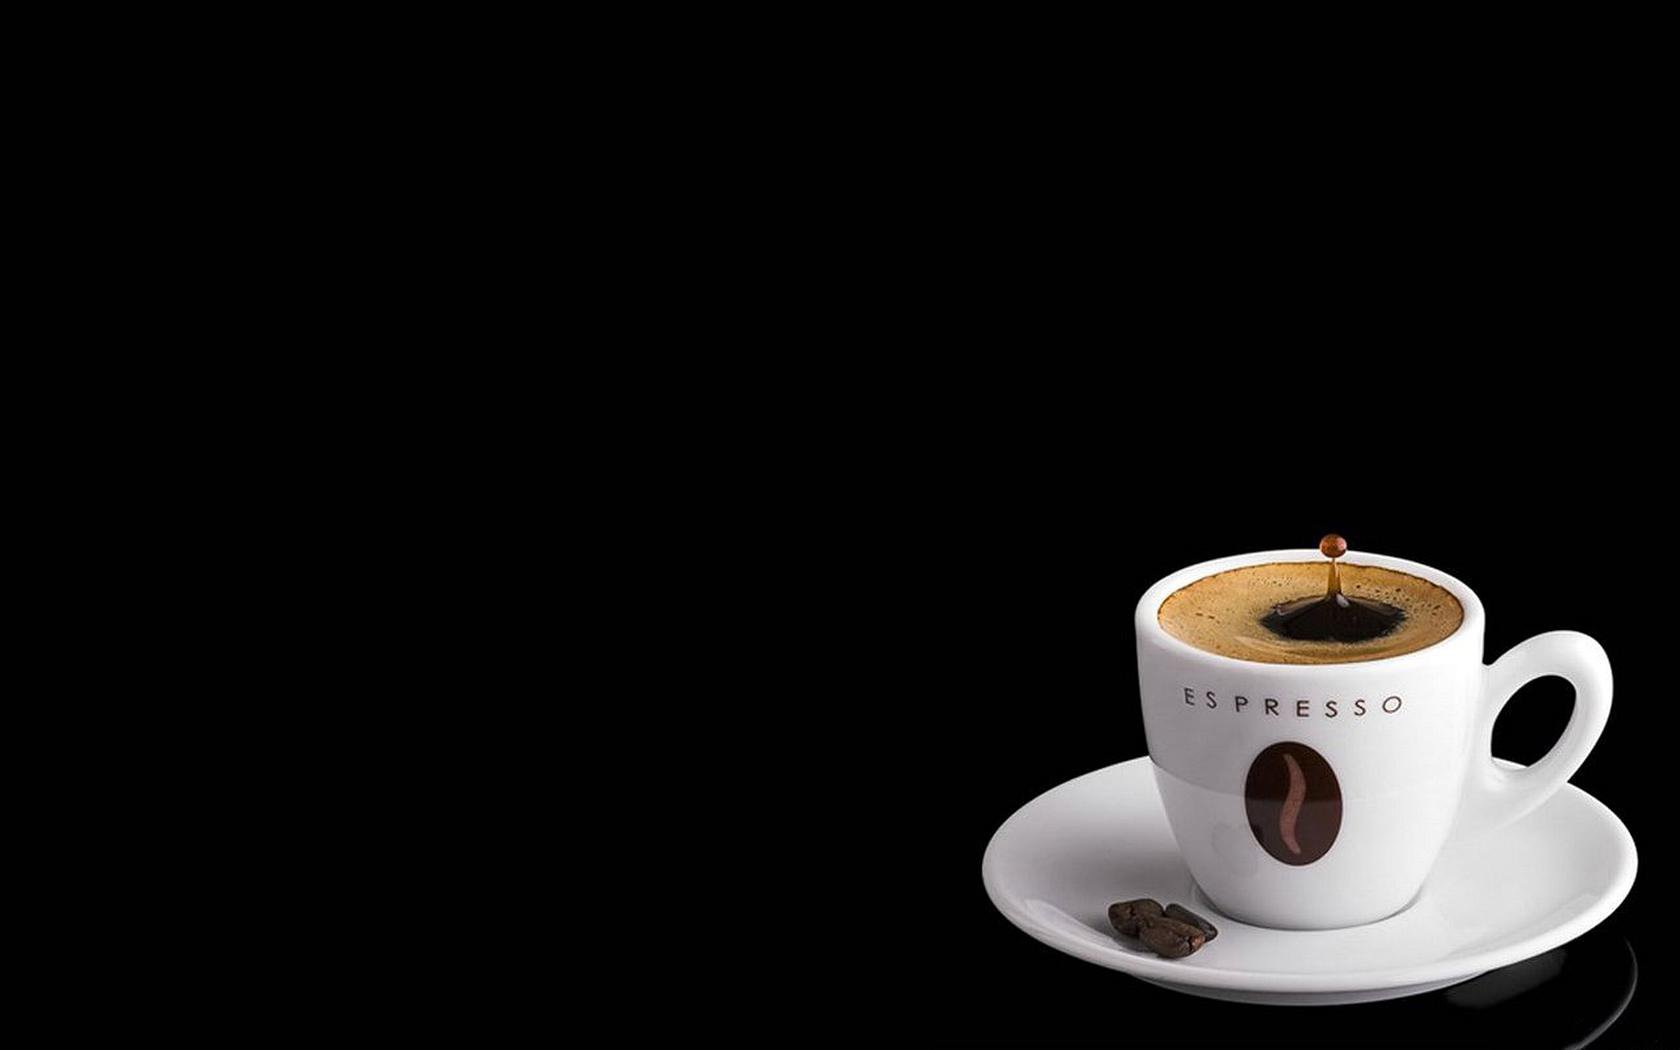 Coffee Lovers Love Hd Wallpapers: Coffee Wallpapers For Desktop